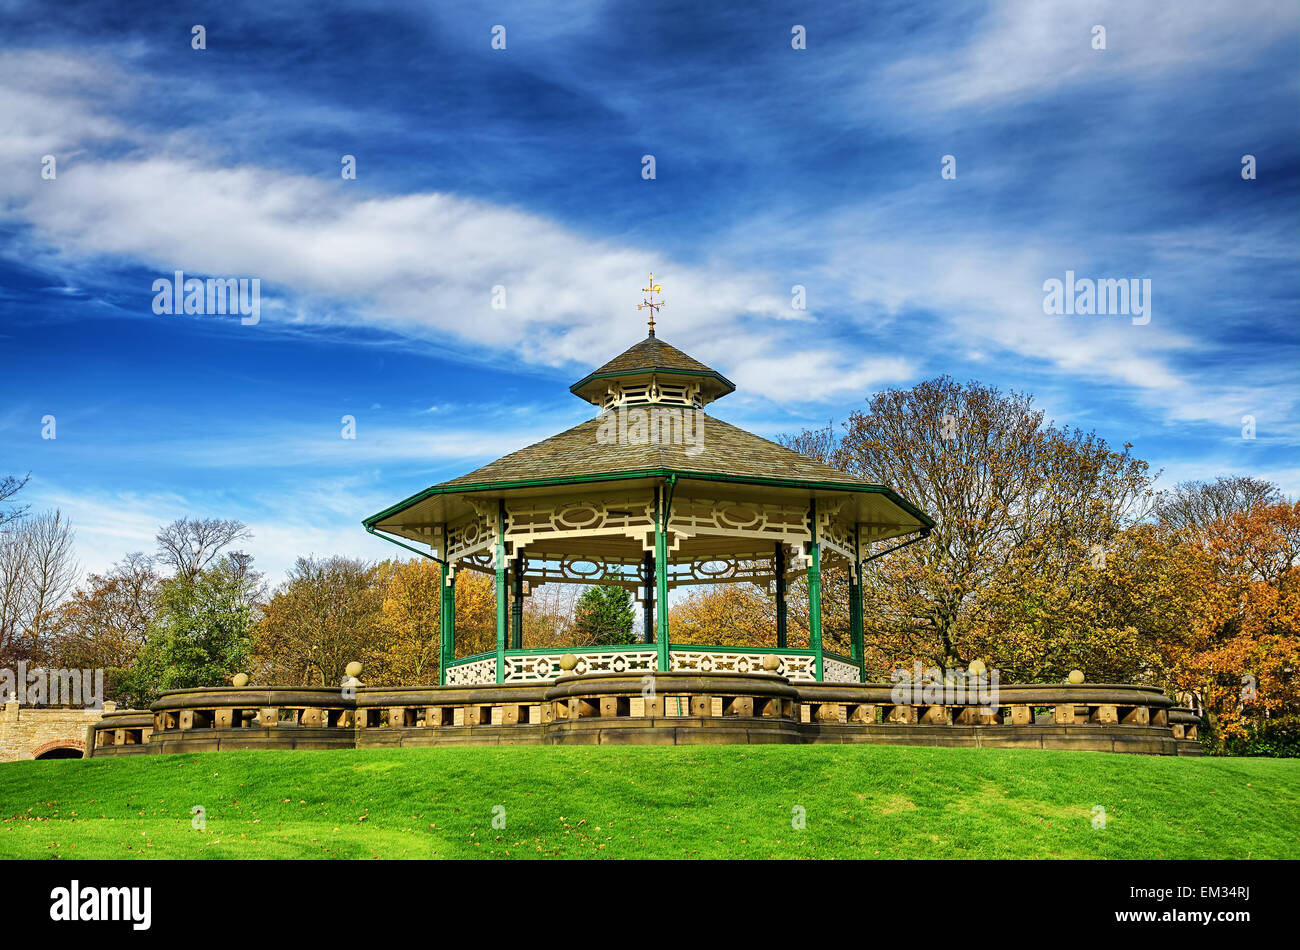 Bandstand in Greenhead park, Huddersfield, Yorkshire, England - Stock Image